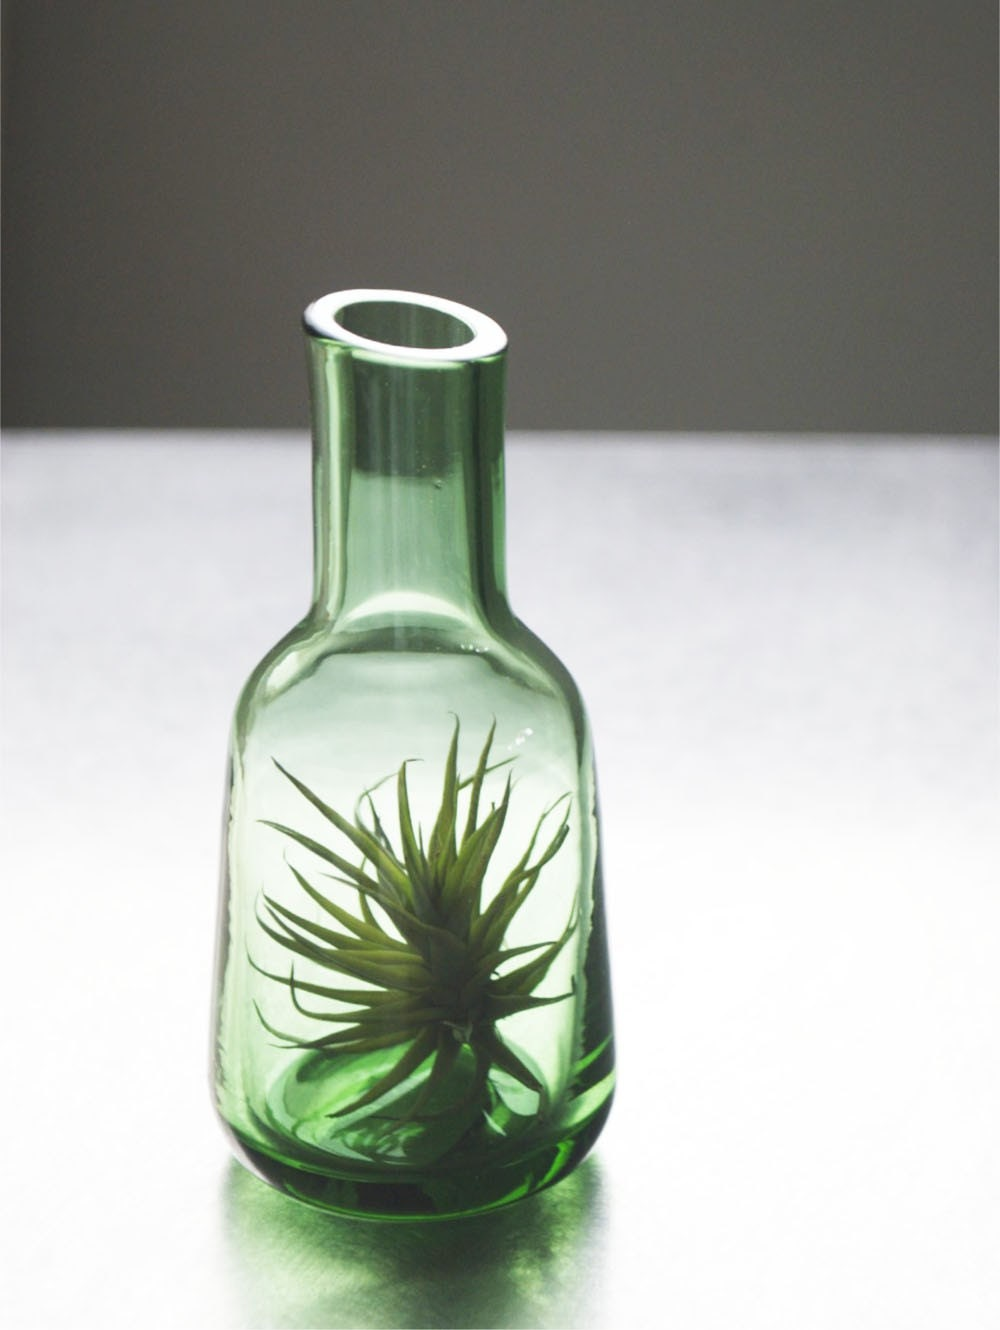 Green Glass Air Plant Vase // Airplant in Small Blown Glass